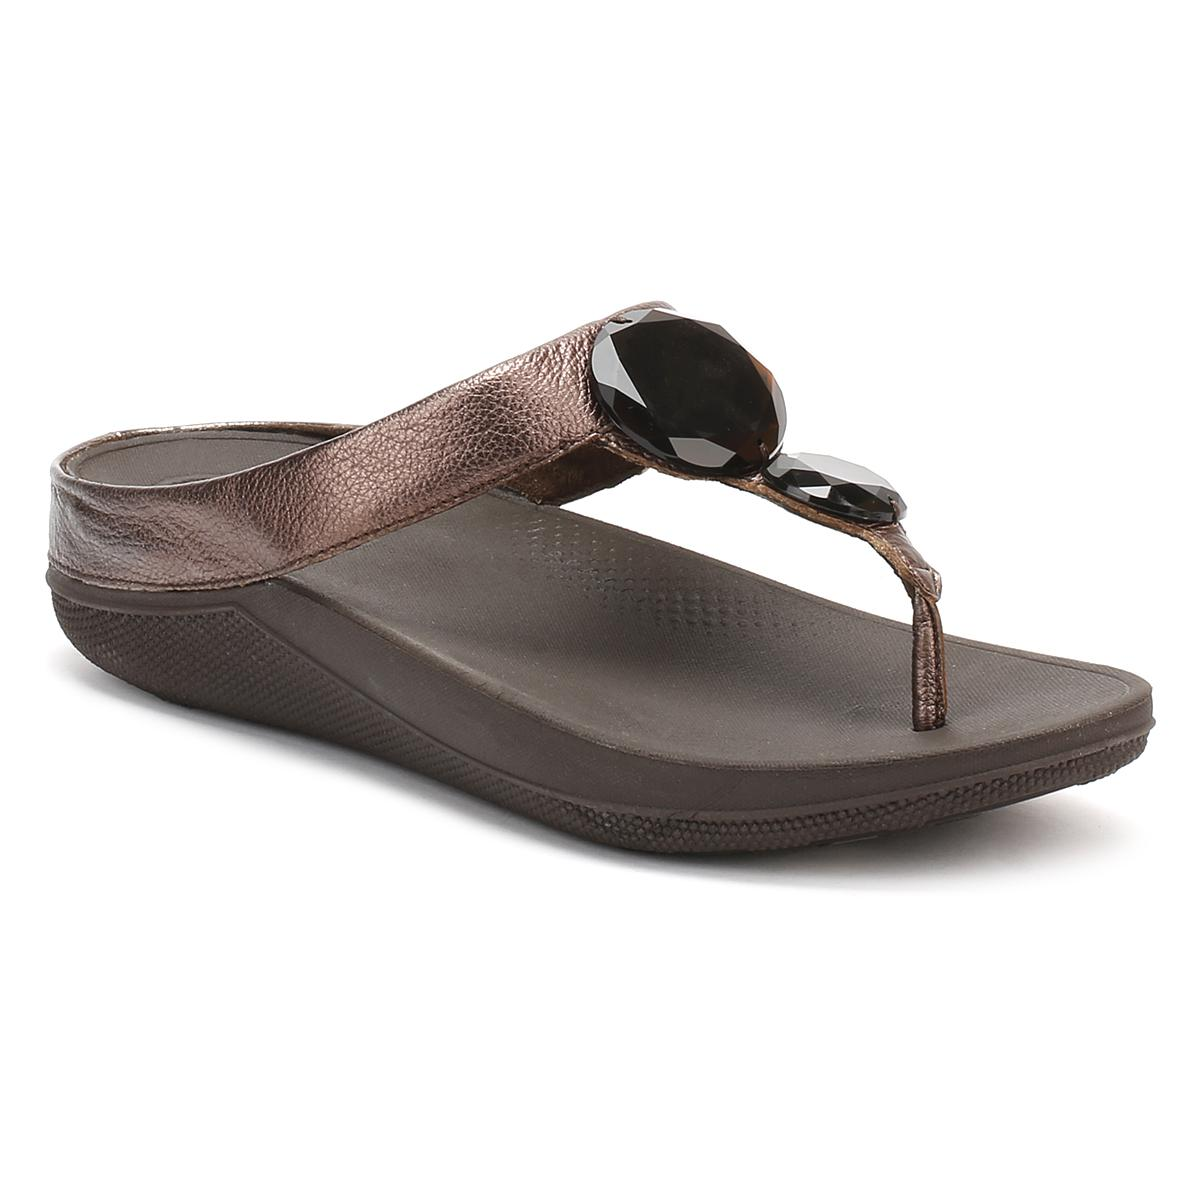 aa34fbc90fb274 Fitflop Womens Bronze Luna Pop Sandals in Brown - Lyst